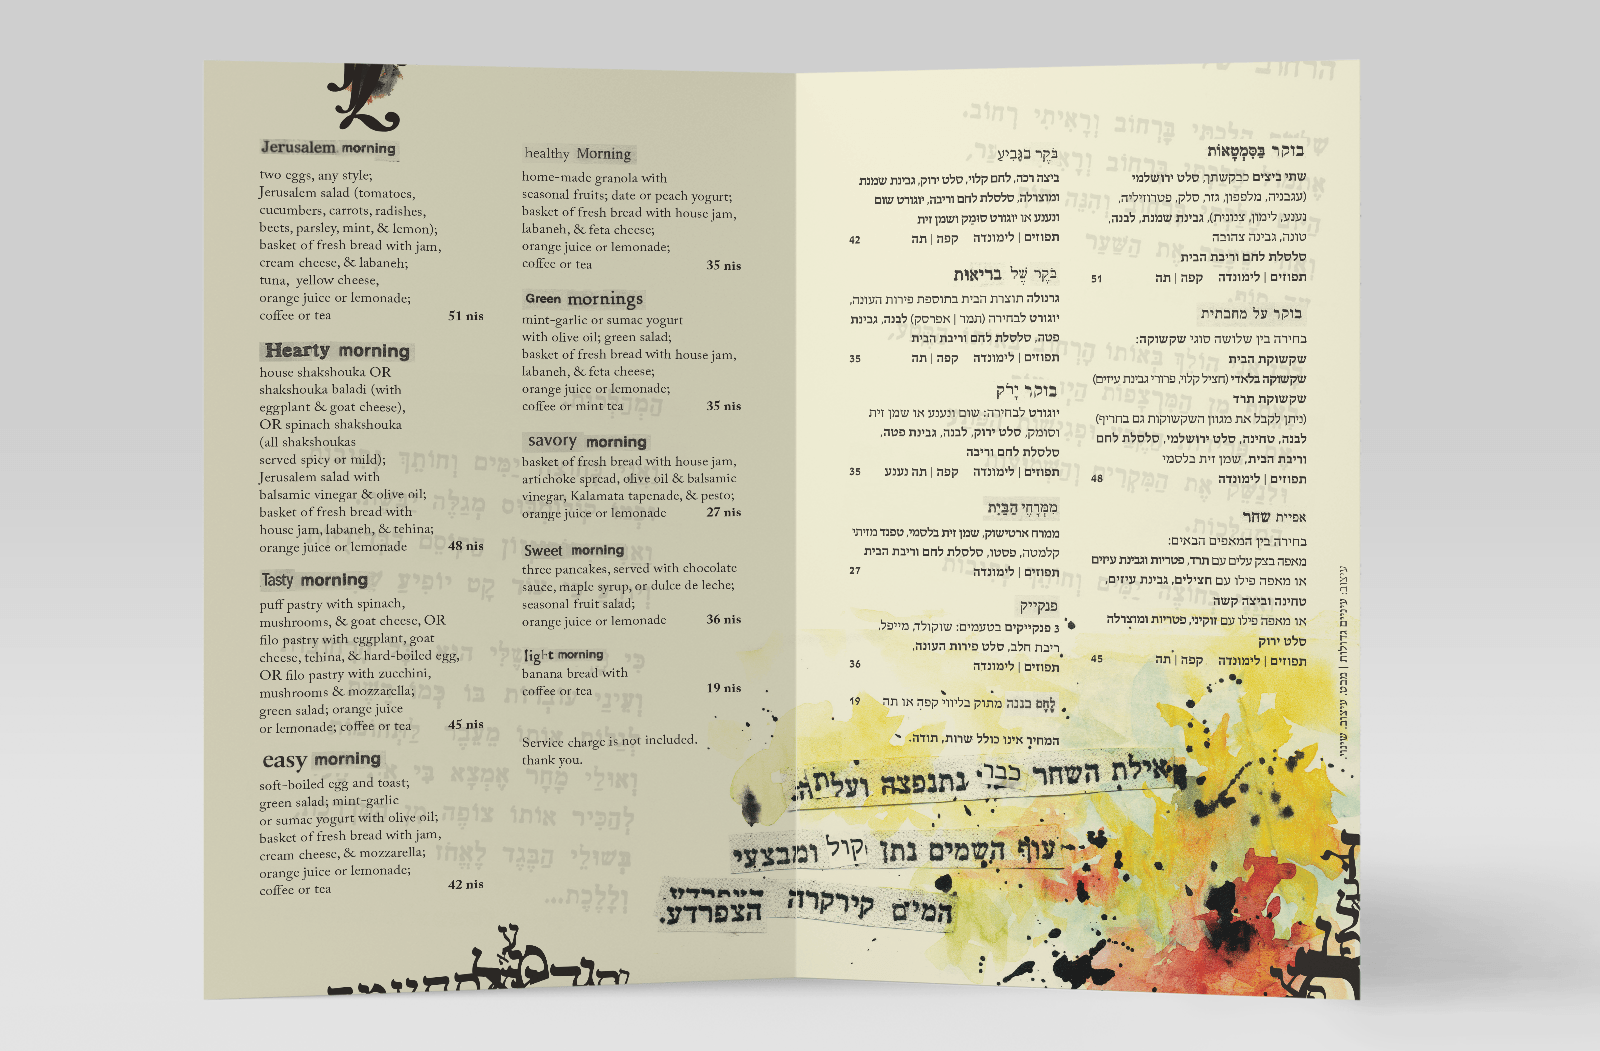 http://bigeyes.co.il/wp-content/uploads/2019/06/tmol-breakfast-menu-02.png